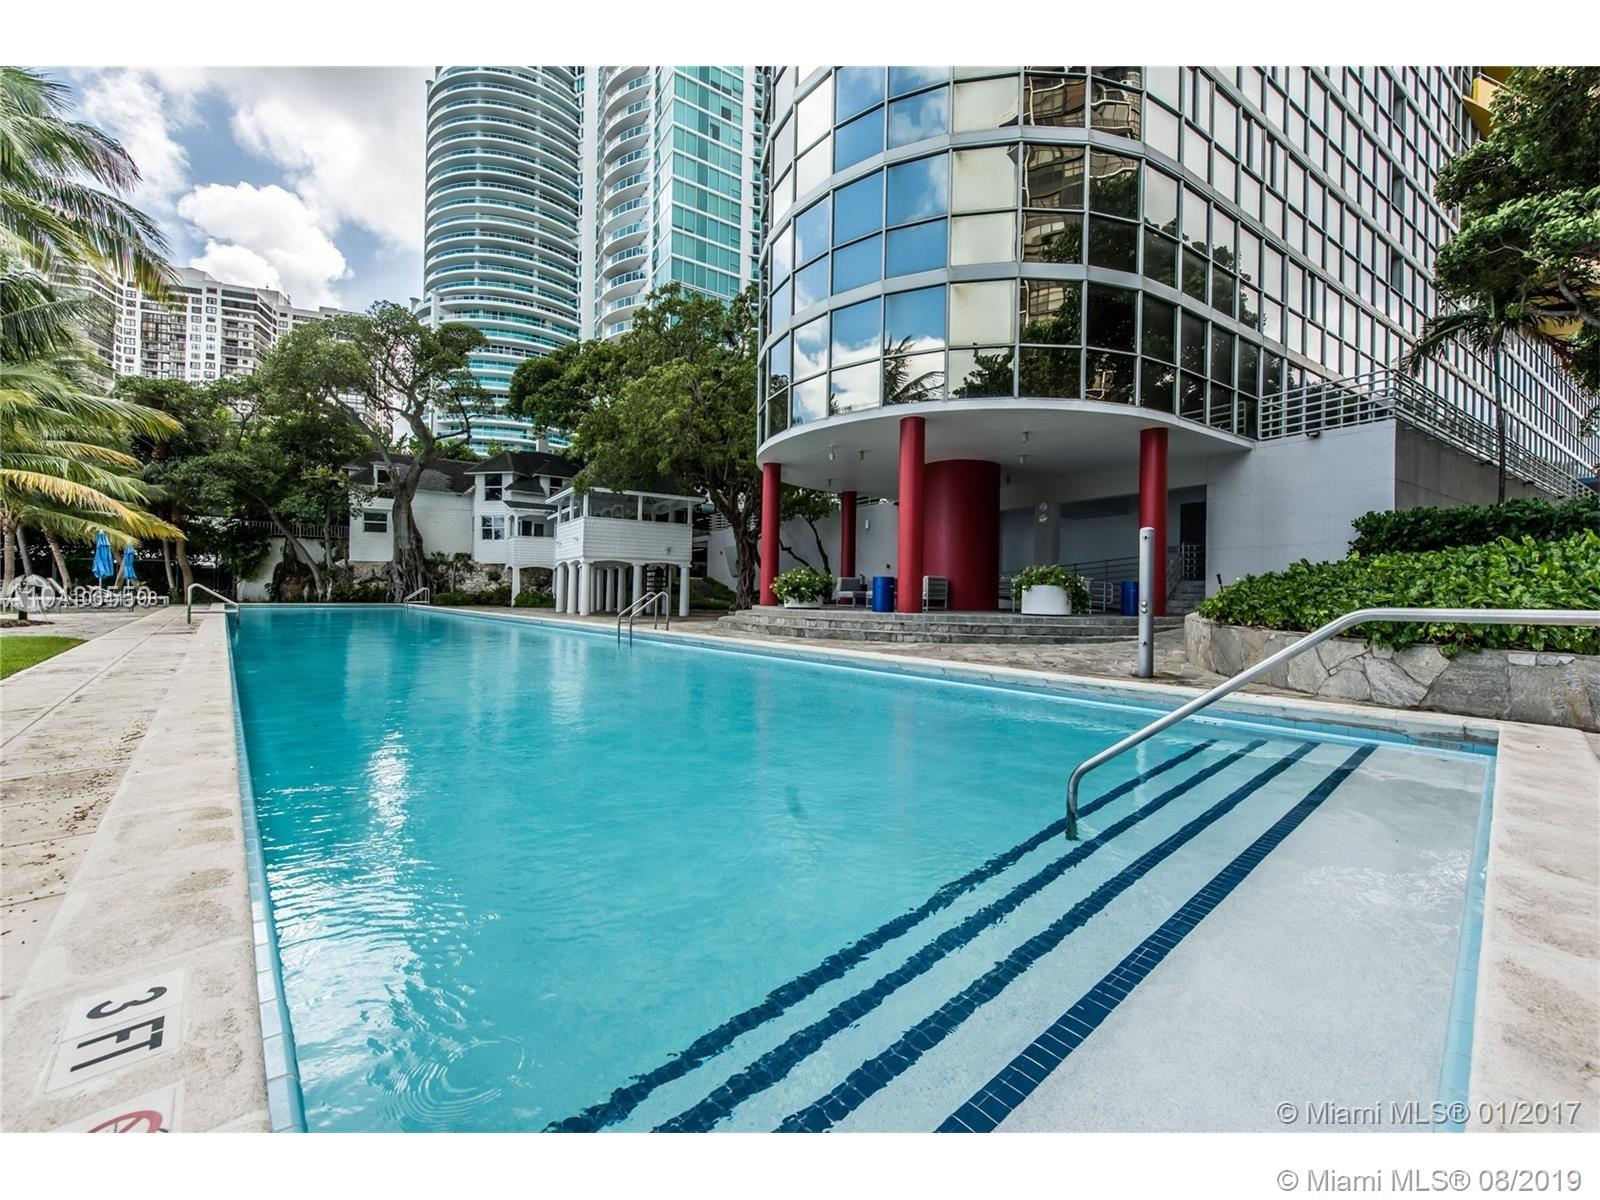 Atlantis on Brickell image #16